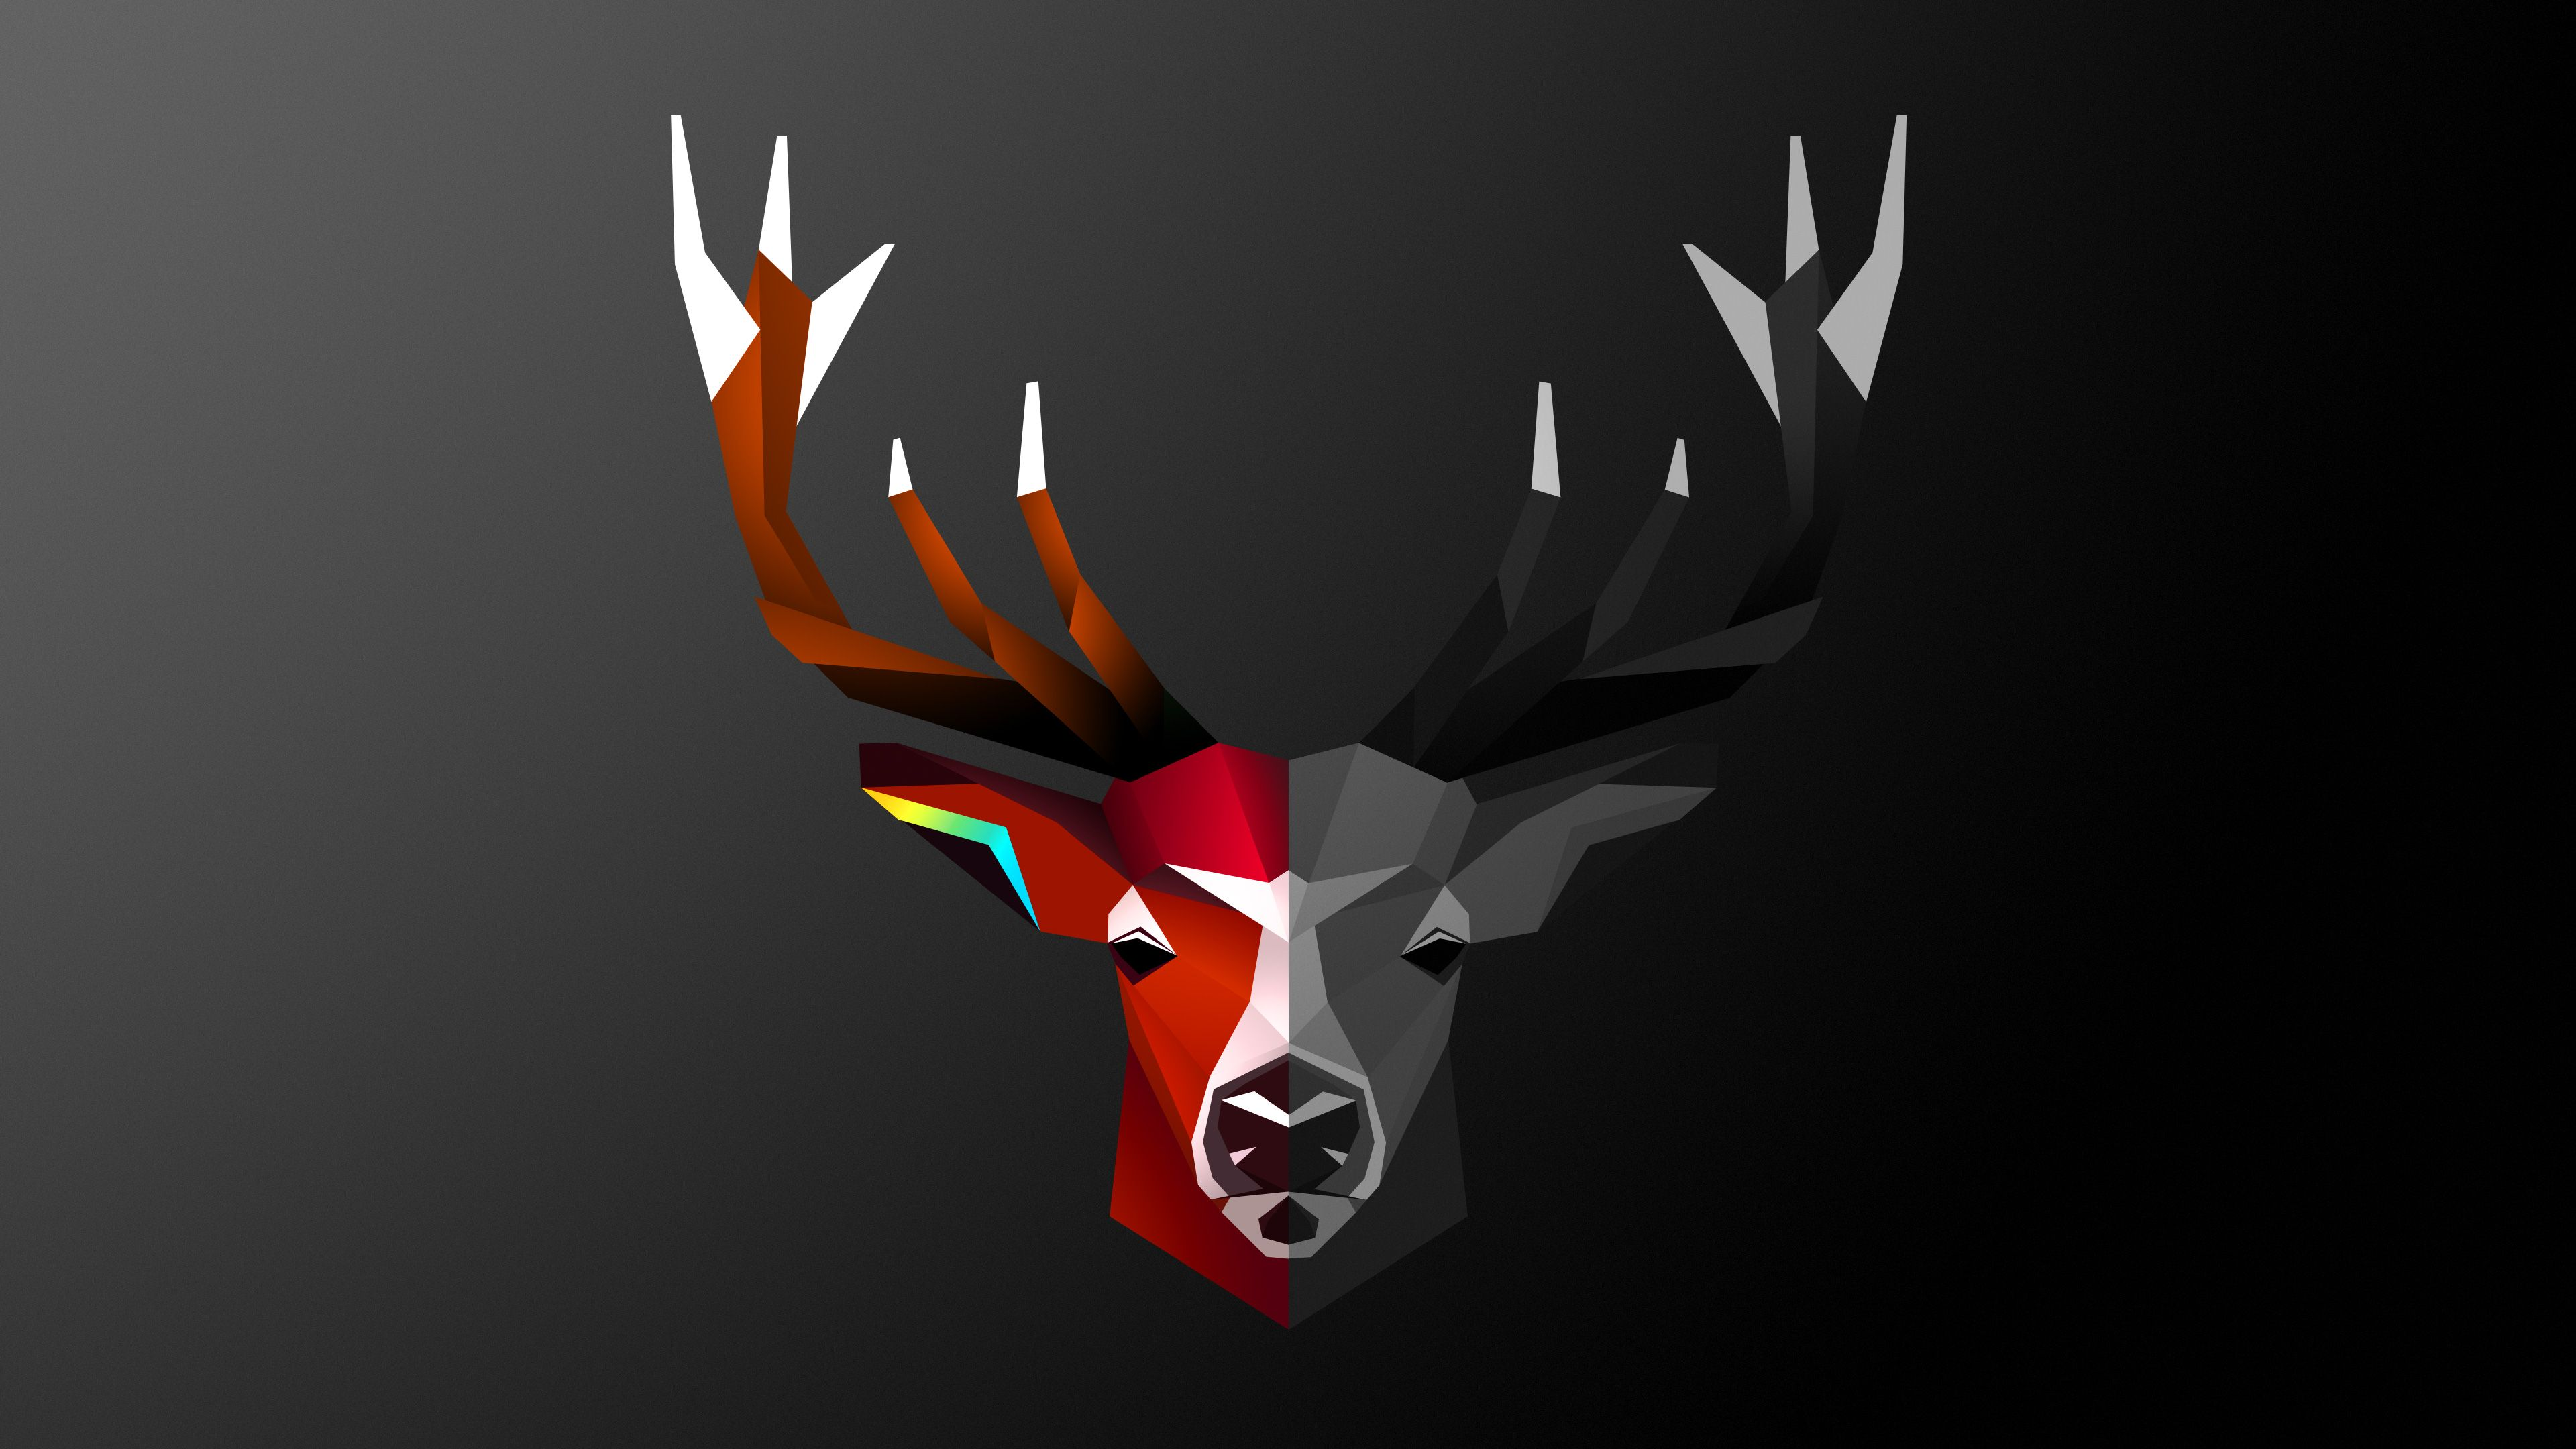 3840x2160 Abstract Deer 4k, HD Abstract, 4k Wallpapers, Images ...